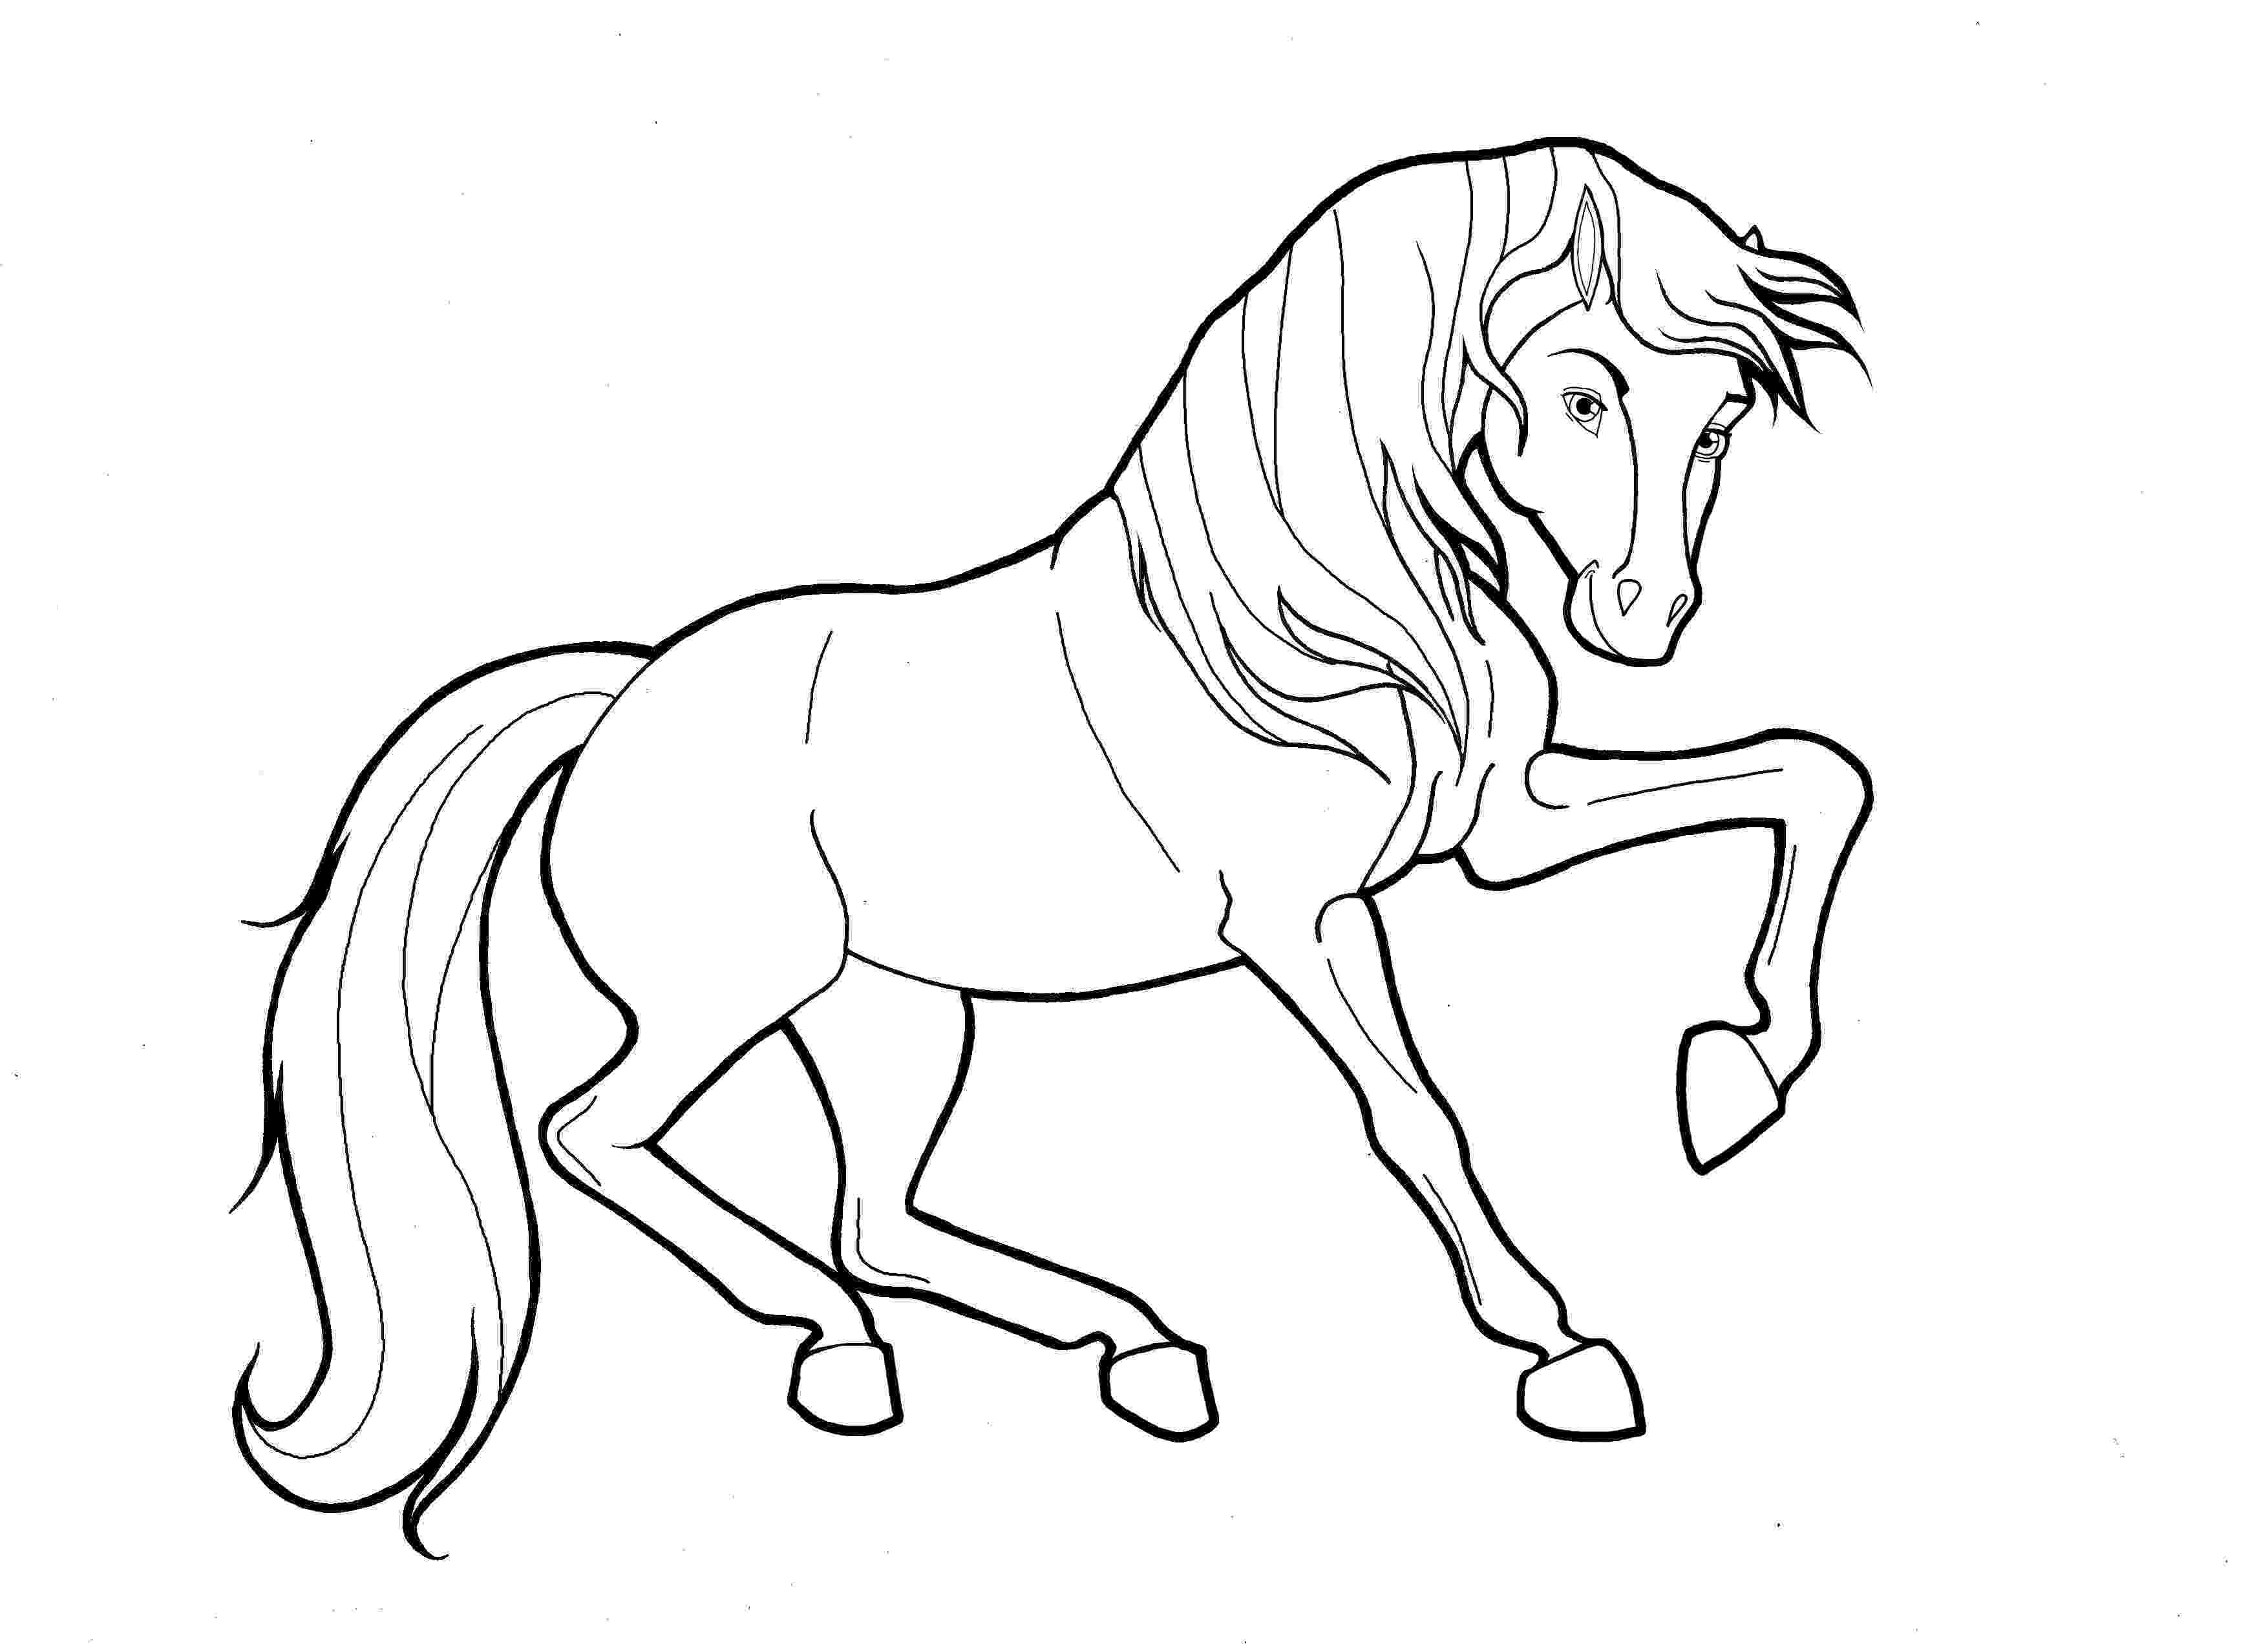 picture of horses to color free horses coloring pages for kids printable coloring of to picture color horses